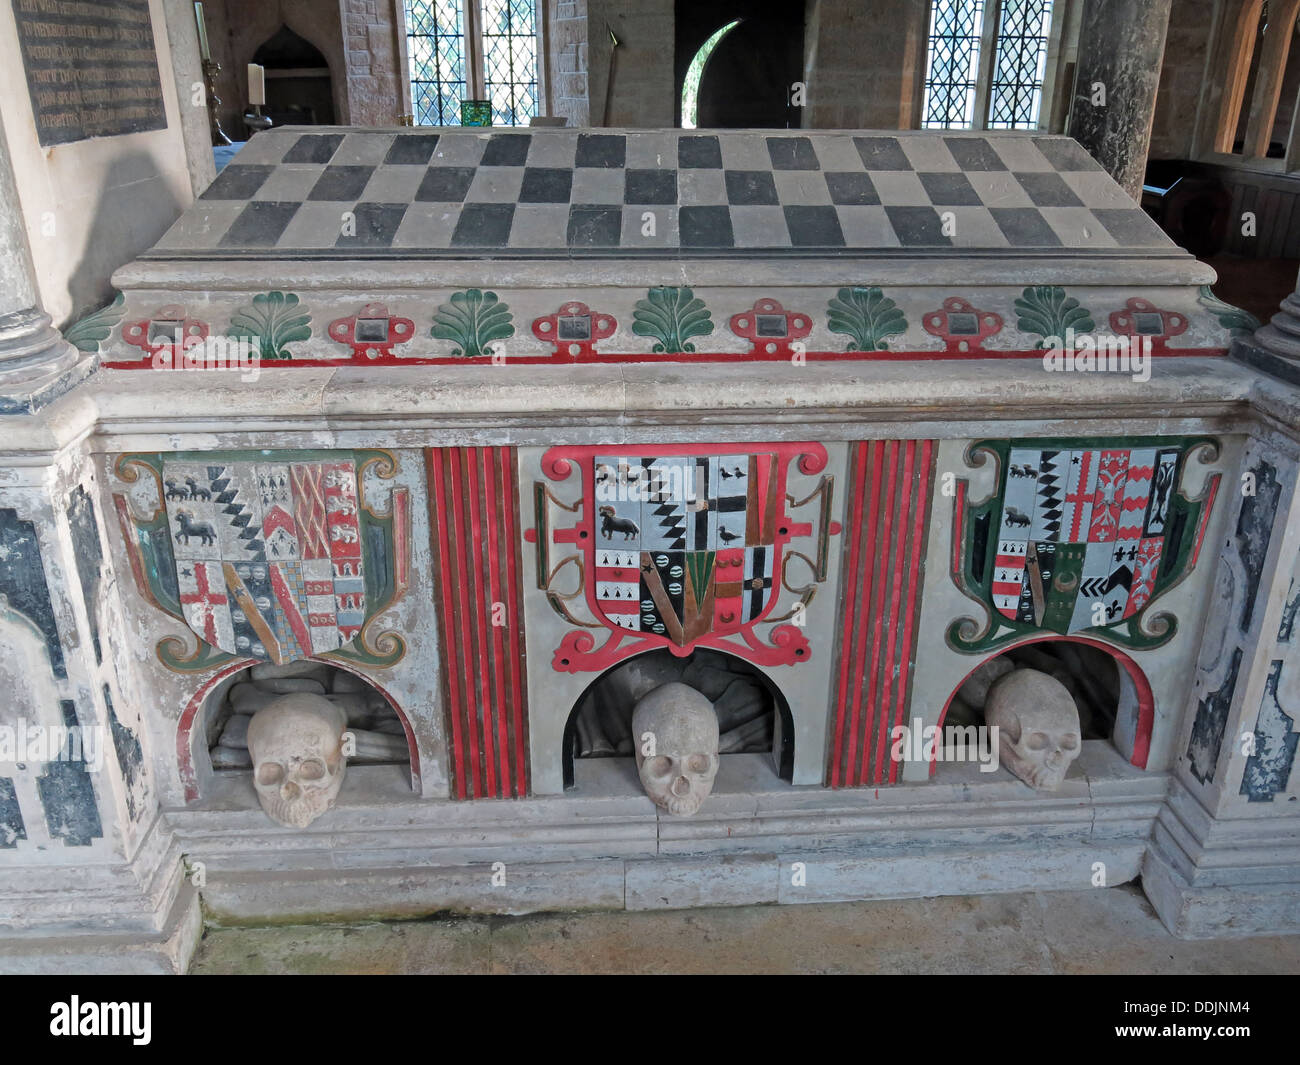 Tomb of John Sydenham, Brympton d'Evercy - Stock Image